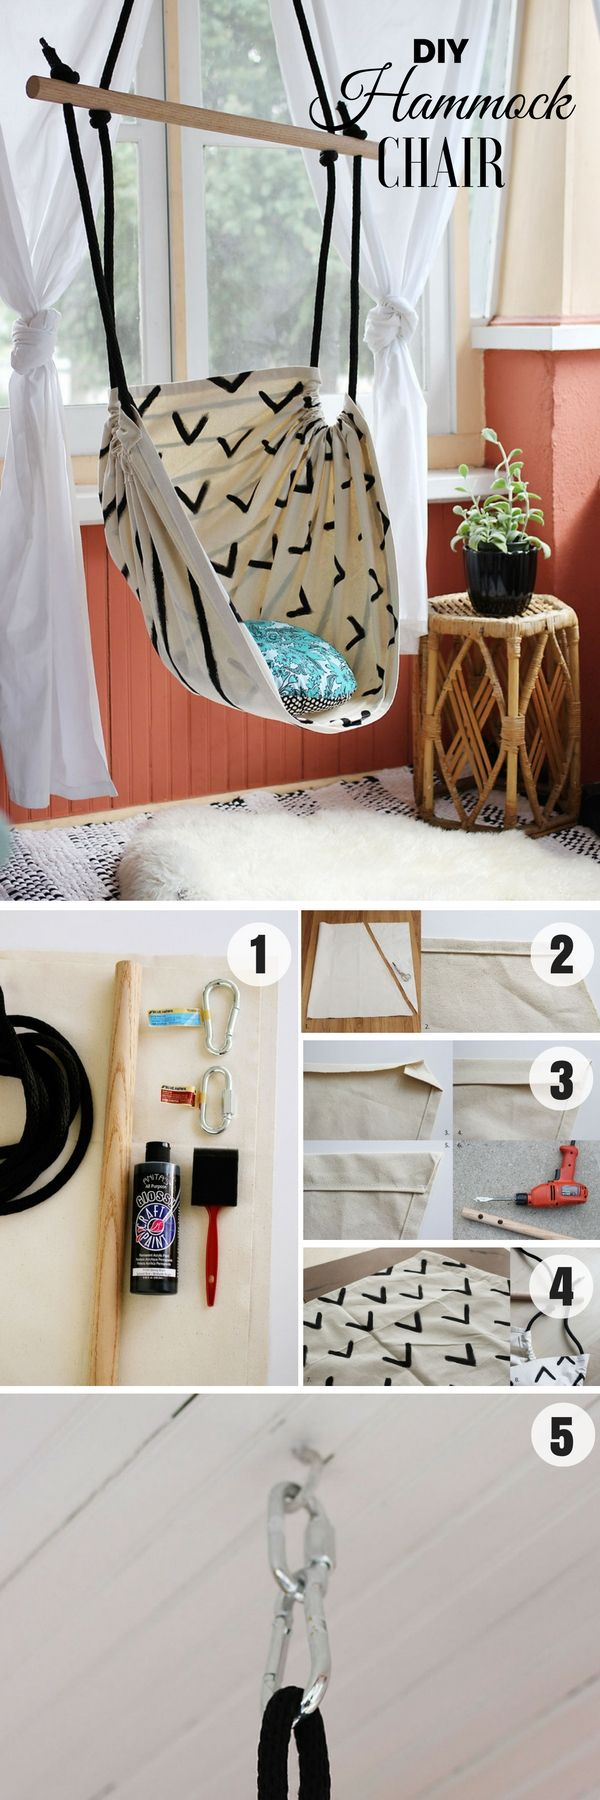 Best 25+ Easy diy room decor ideas on Pinterest | Diy for teens ...